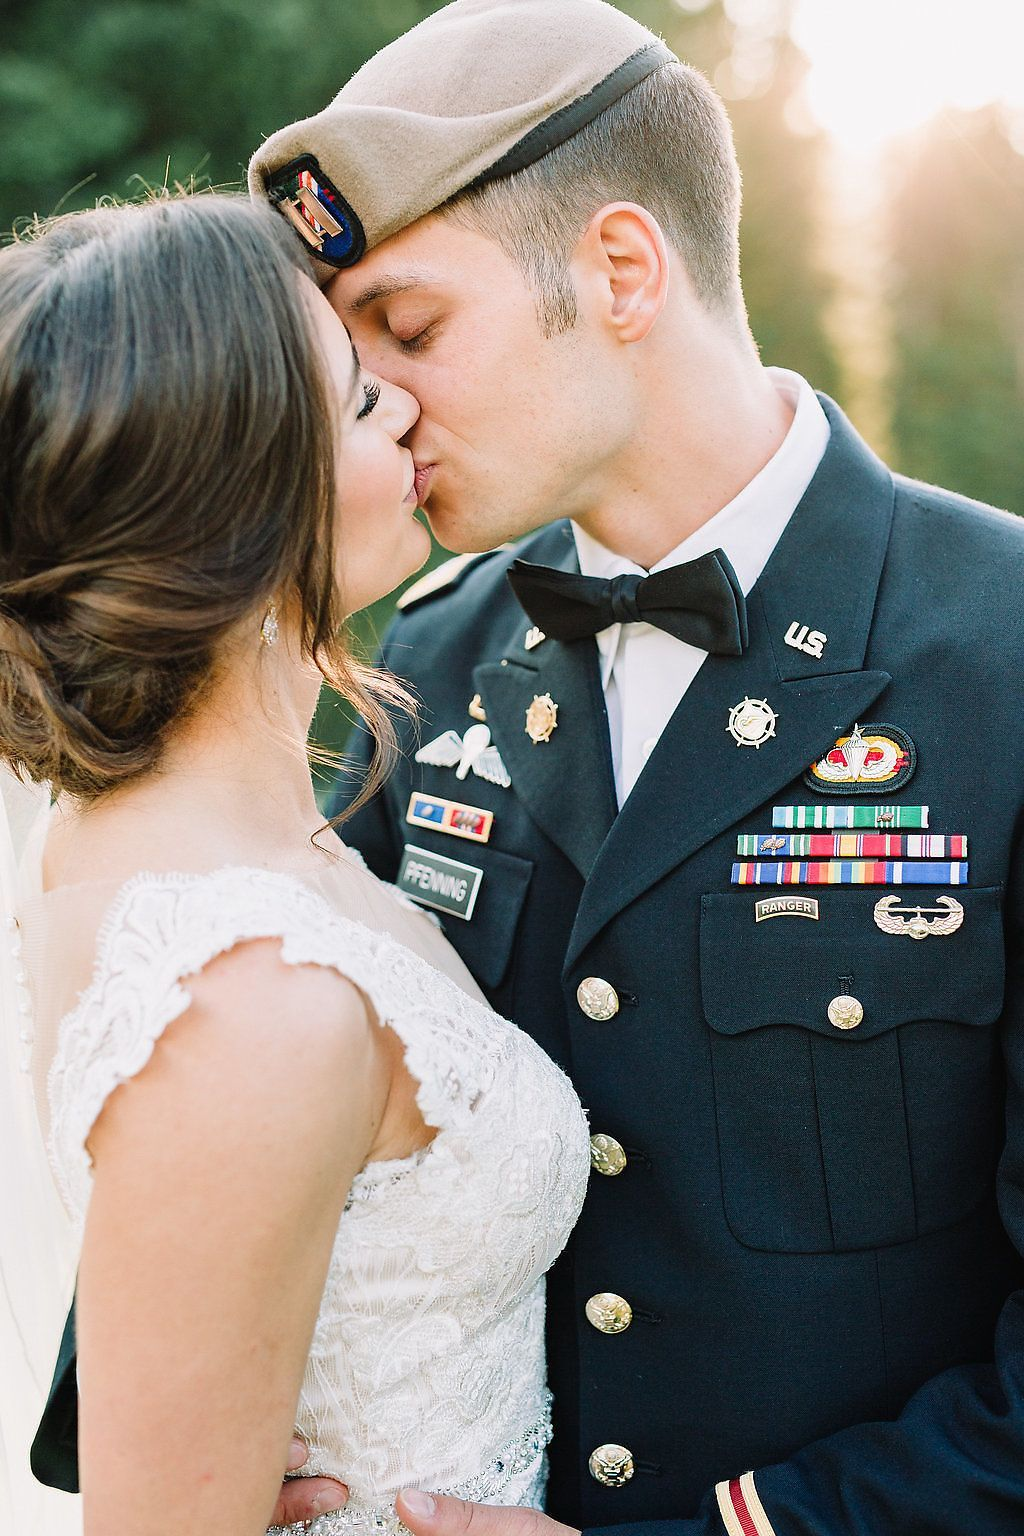 Military Wedding Army Rangers Romantic Bride And Groom Photo By As Ever Ph In 2020 Military Wedding Army Military Wedding Military Wedding Pictures